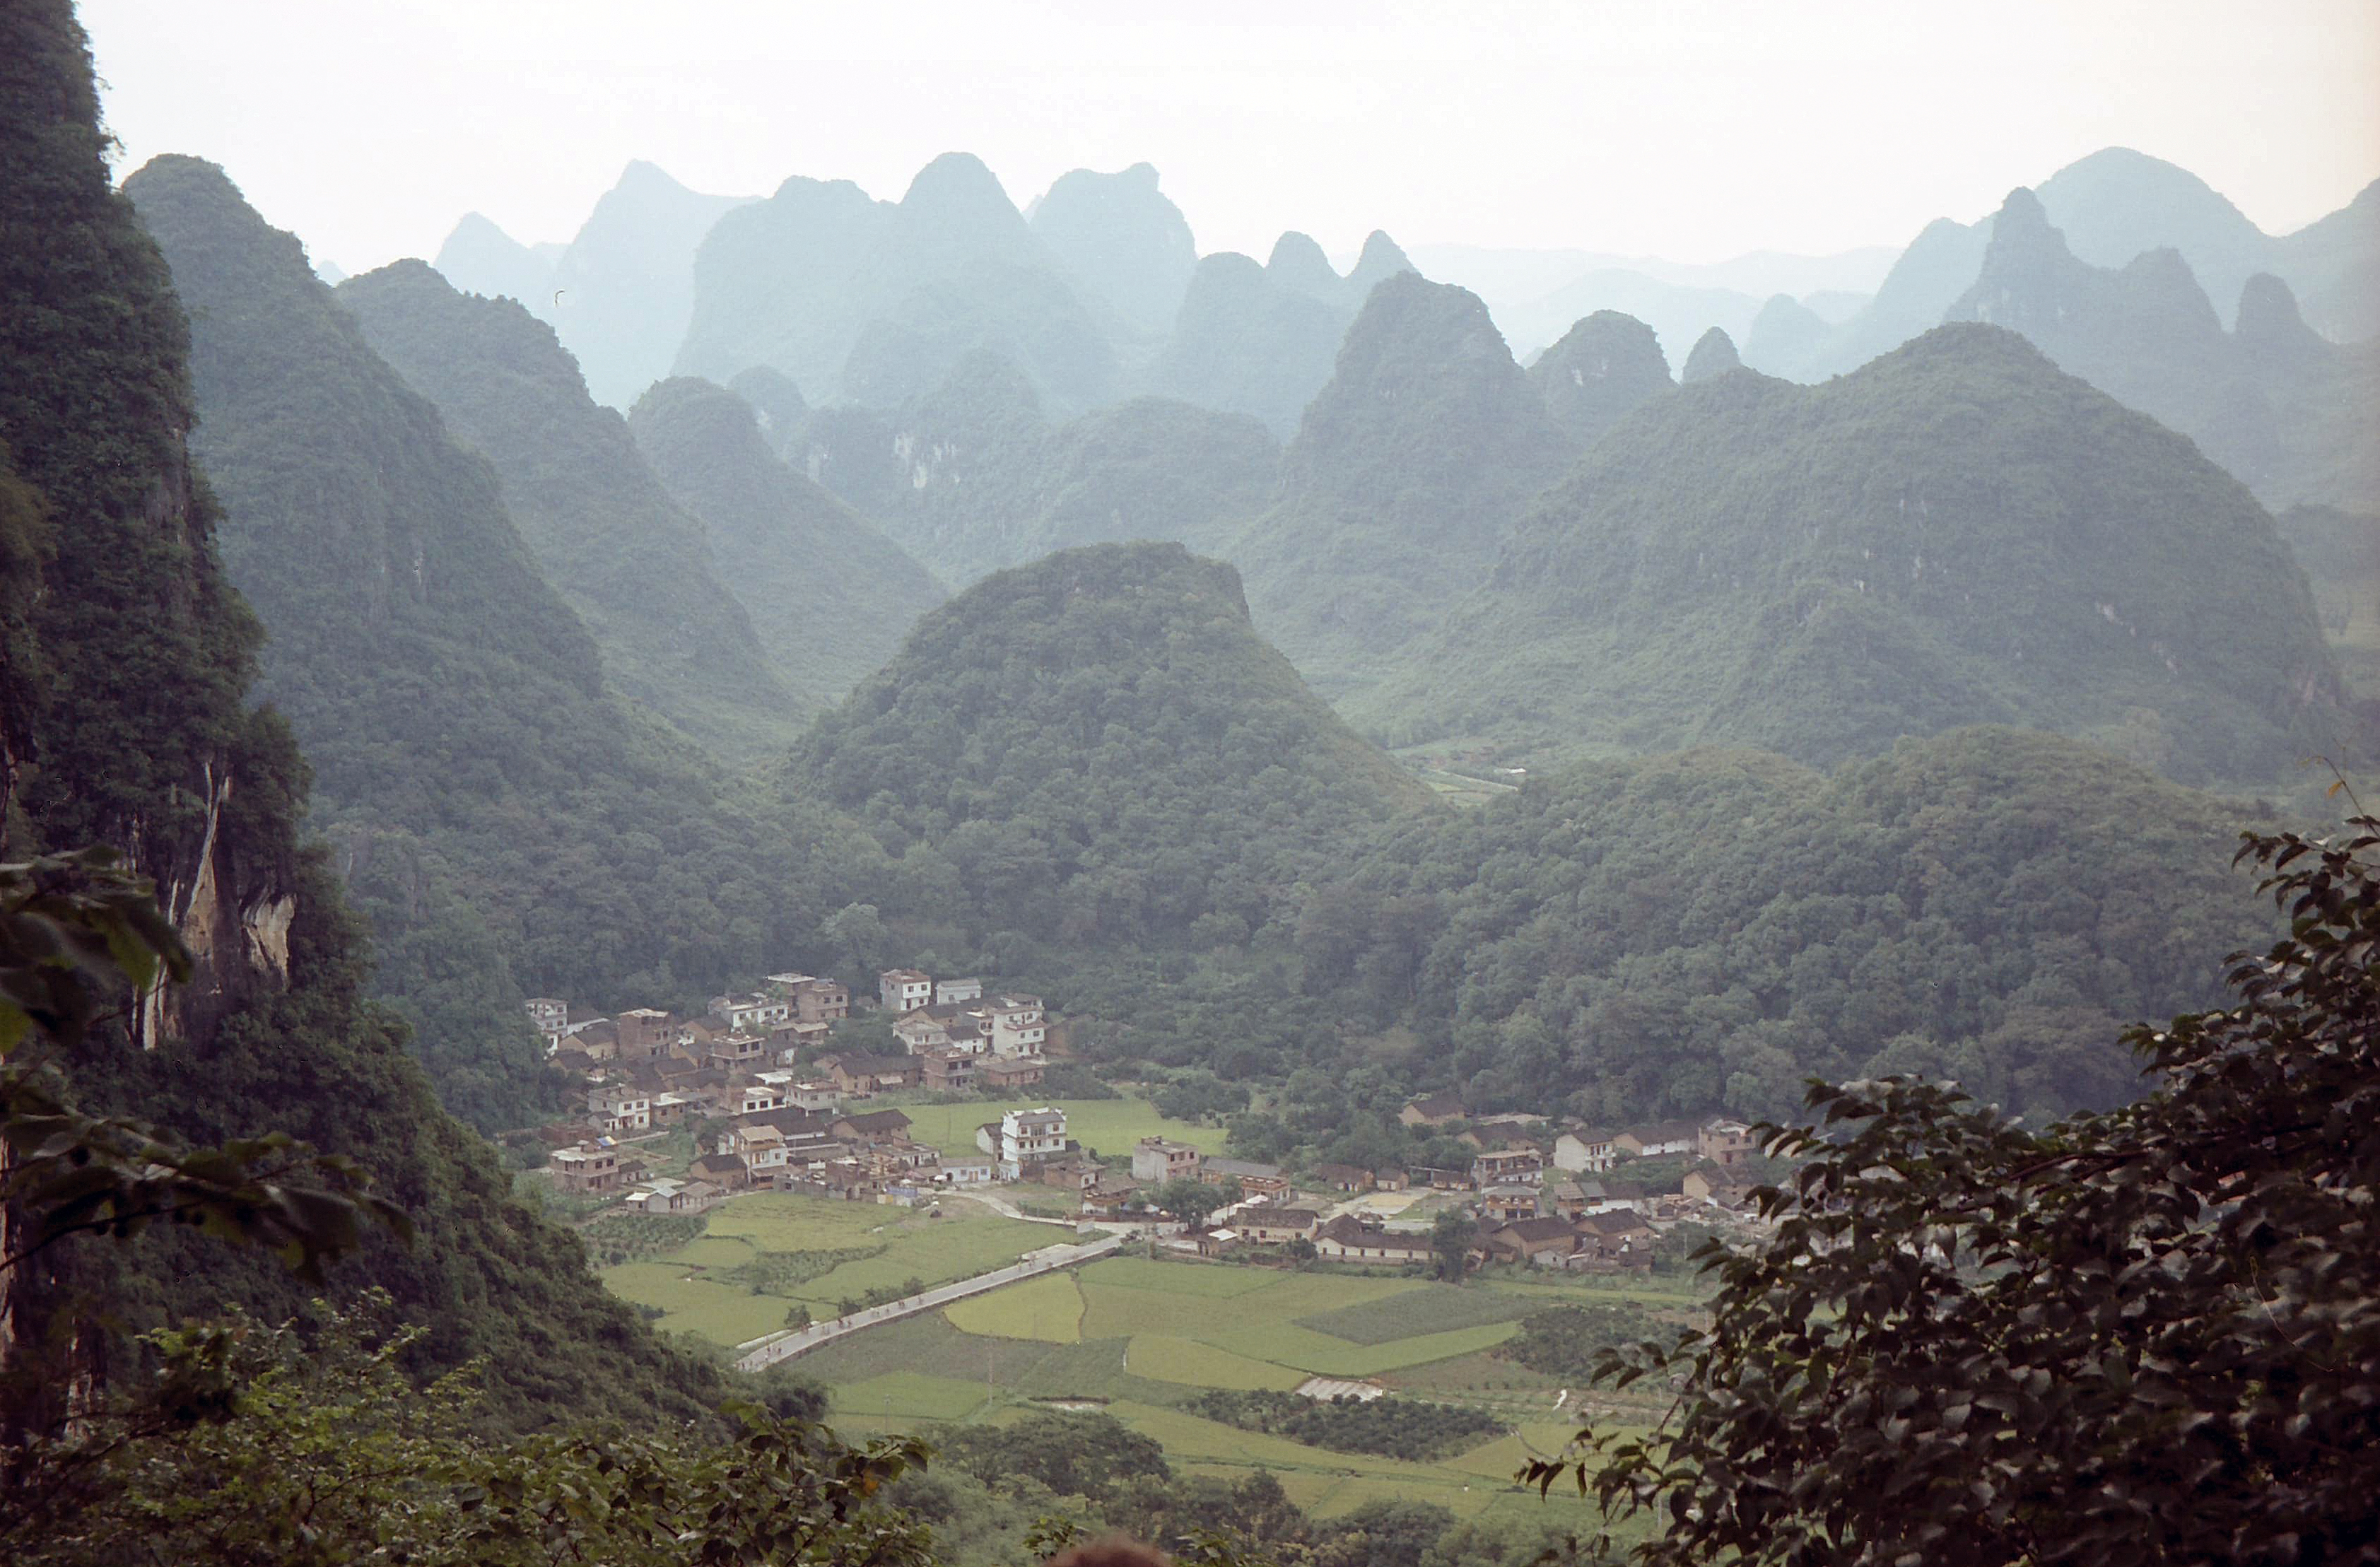 Moon hill, Guilin China.jpg - Moon hill